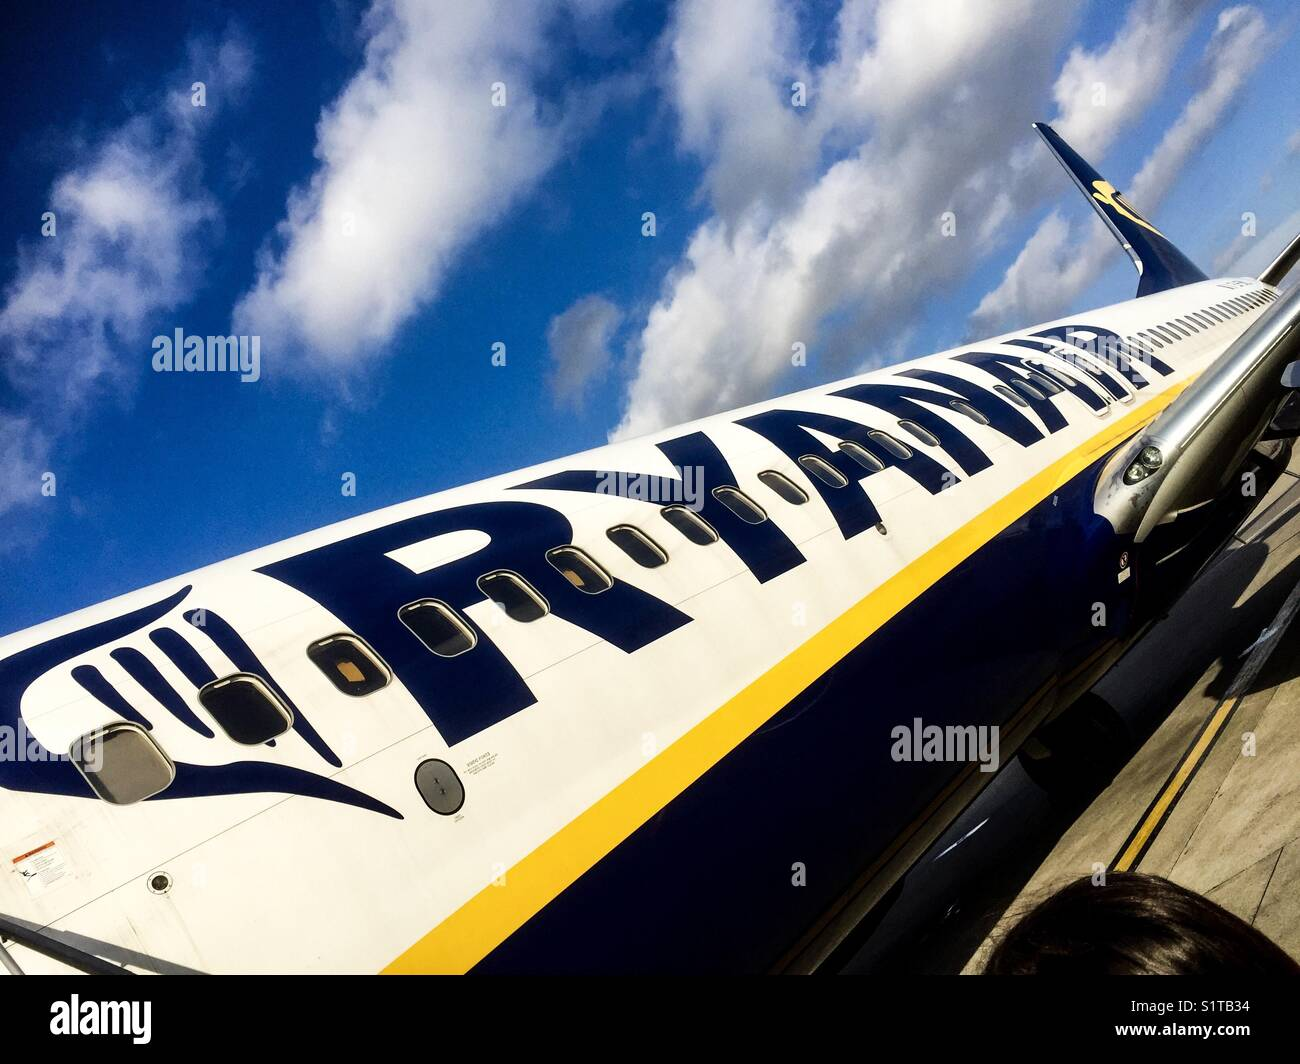 A Ryanair plane fuselage close up at an abstract angle - Stock Image